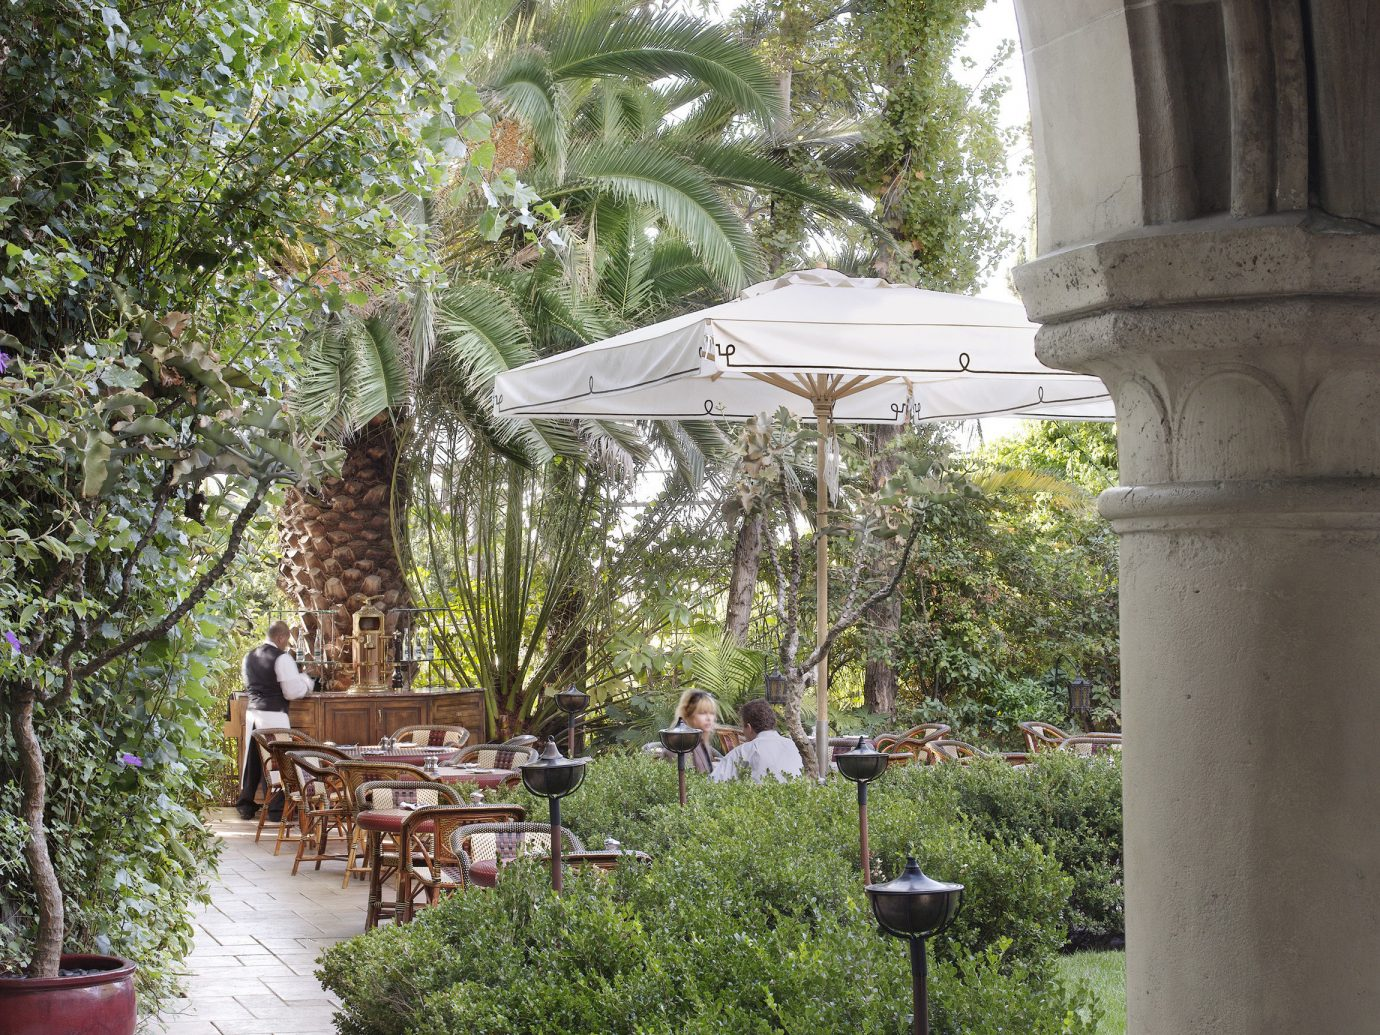 Celebs Hotels Offbeat Trip Ideas tree outdoor building Garden botany Architecture arch Courtyard flower estate outdoor structure stone yard plant surrounded colonnade